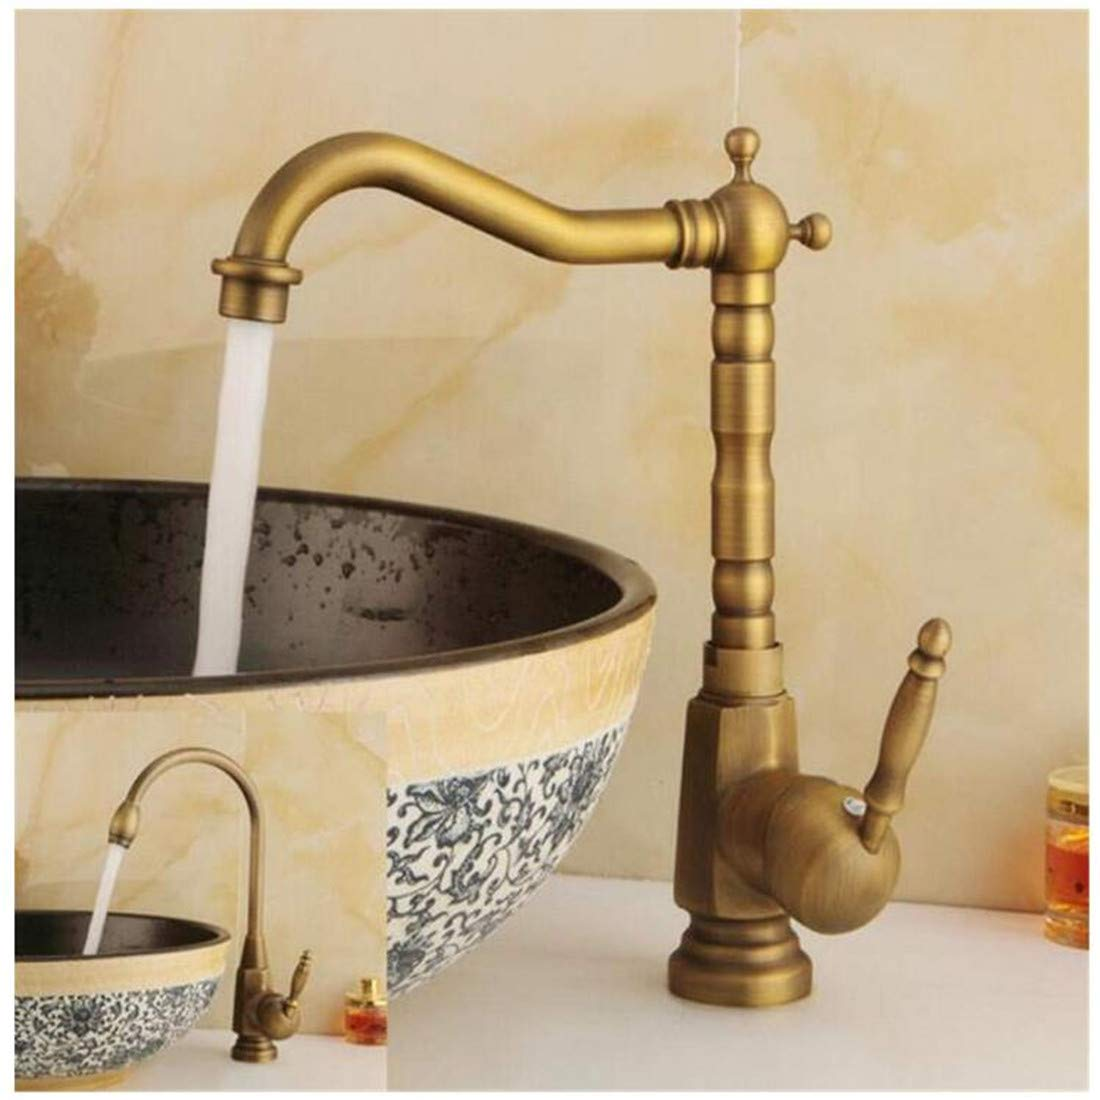 Kitchen Bath Basin Sink Bathroom Taps Sink Water Tap Single Handle Cold and Hot Water Ctzl2981